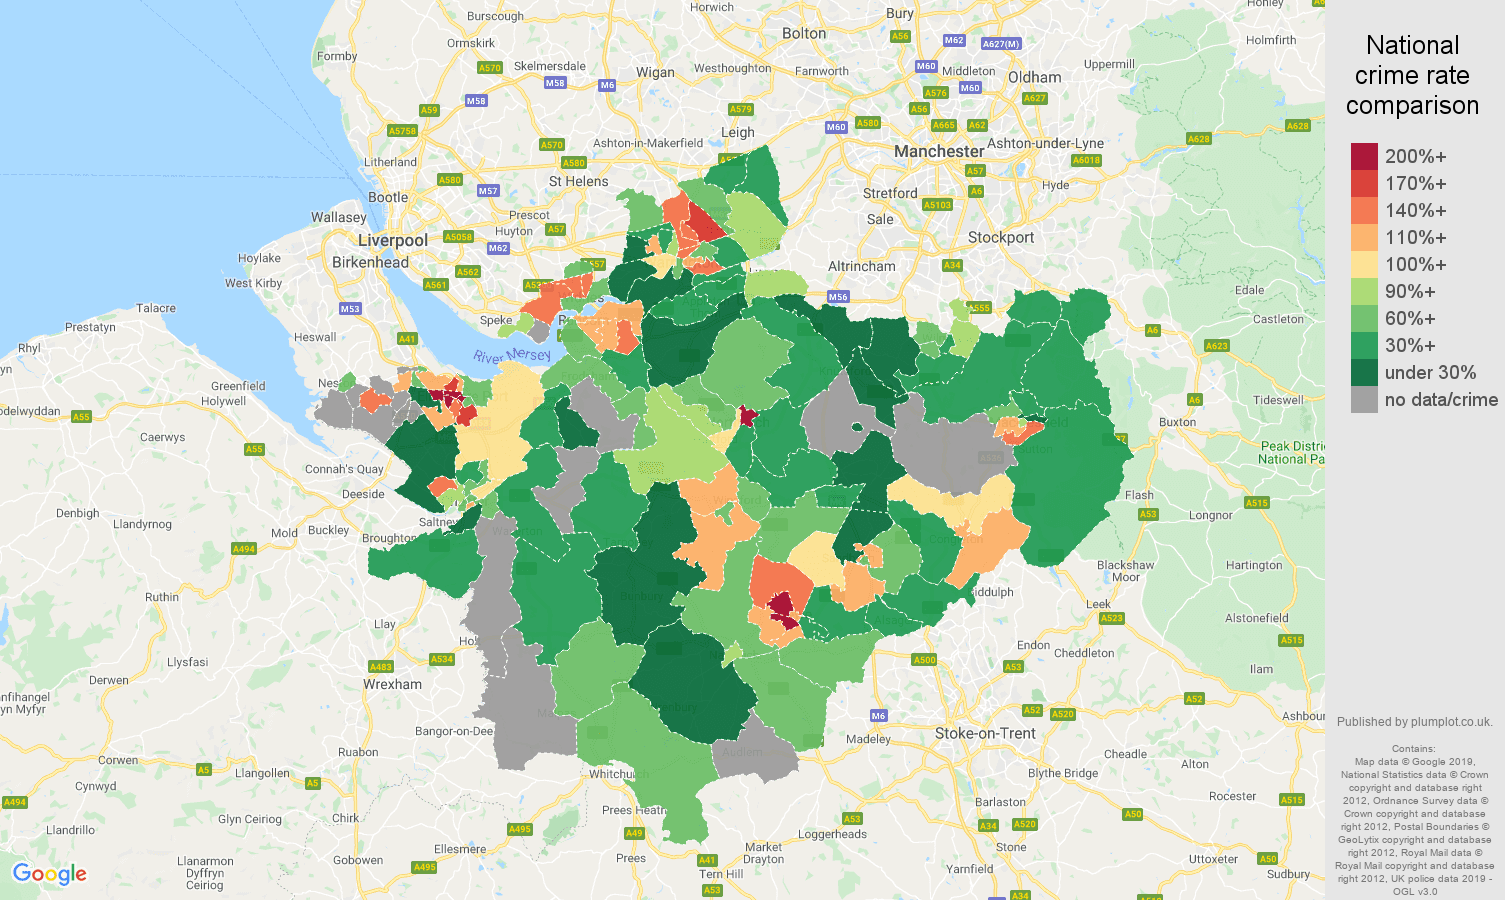 Cheshire other crime rate comparison map